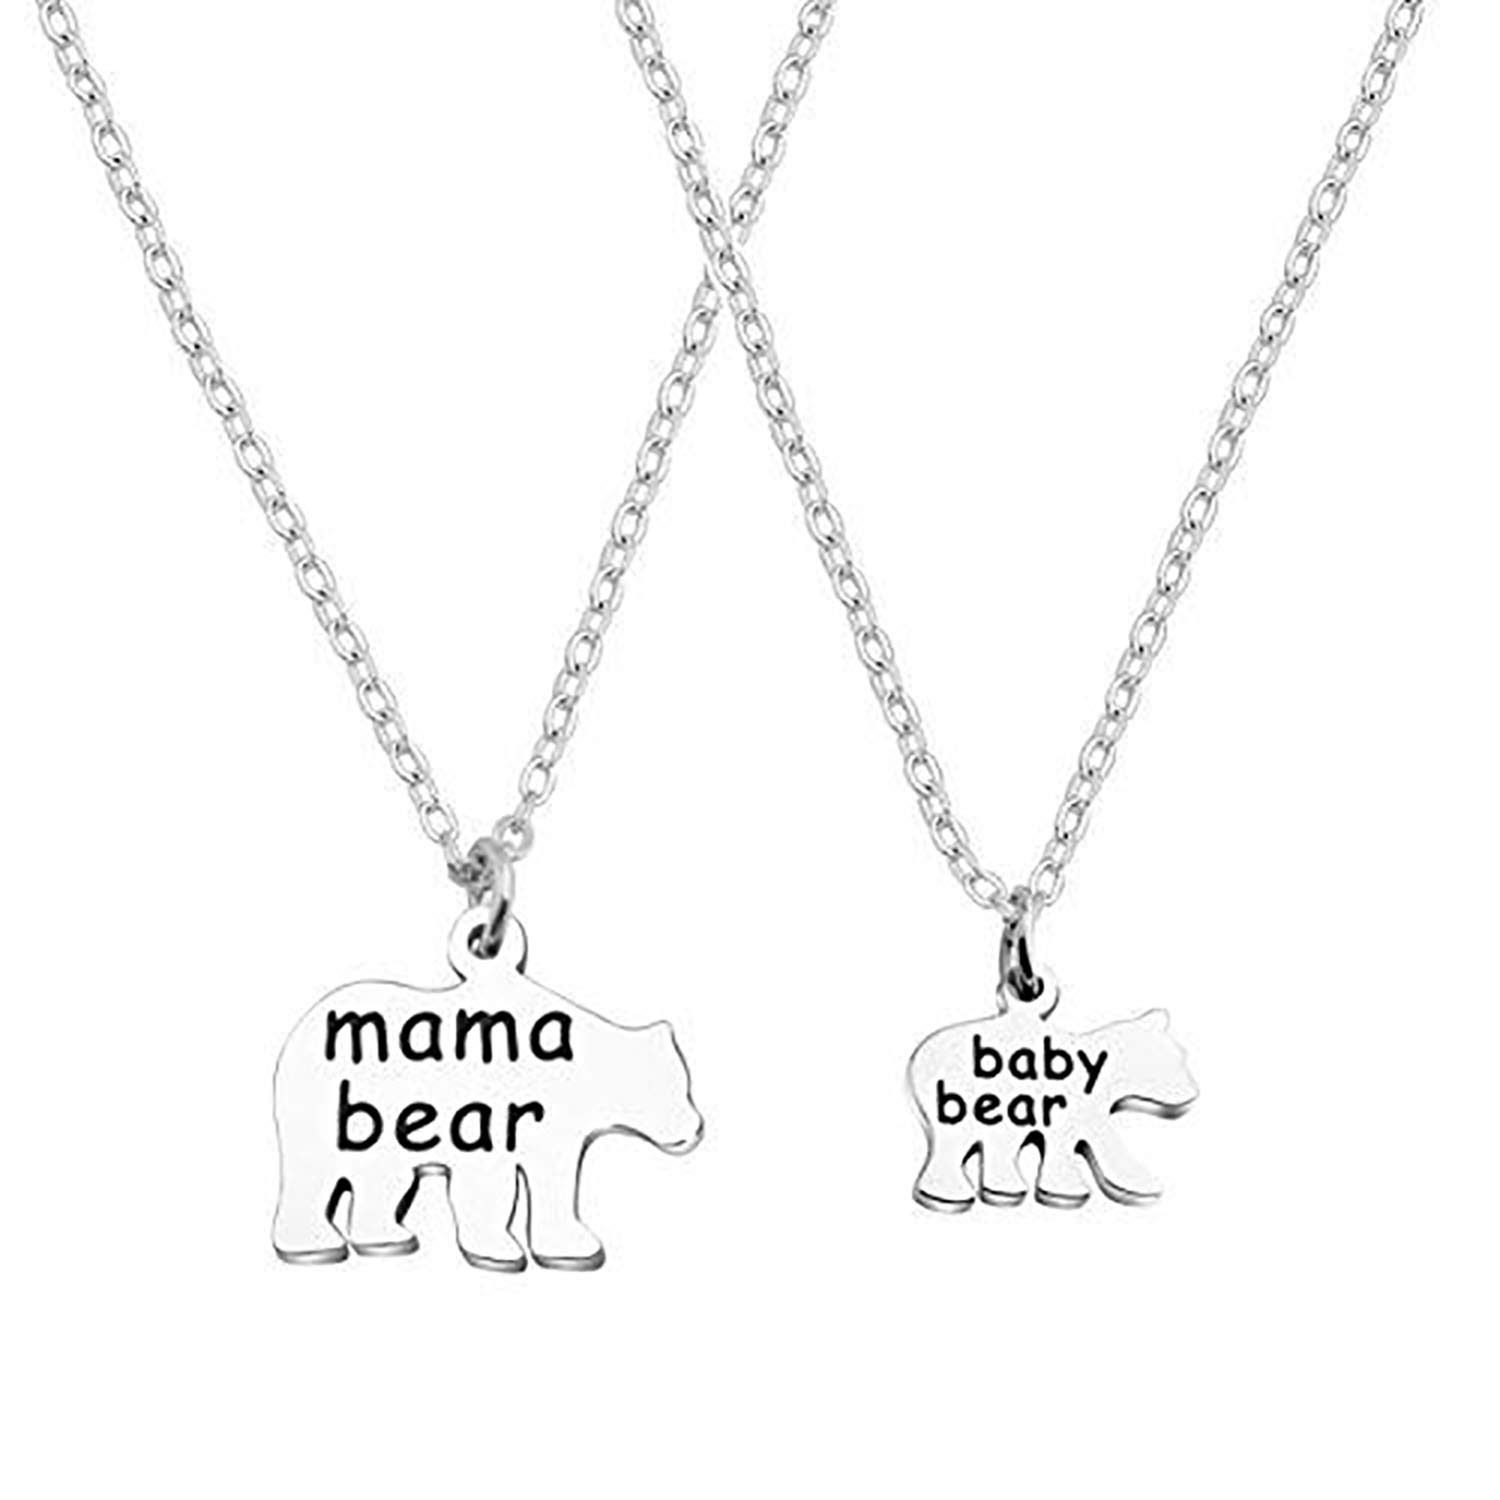 15bf29f9313 Amazon.com  CHOROY Mama Bear Baby Bear Necklace Set Mother Daughter Necklace  Gift for Mom and Daughter (Mama Bear Necklace Set)  Jewelry